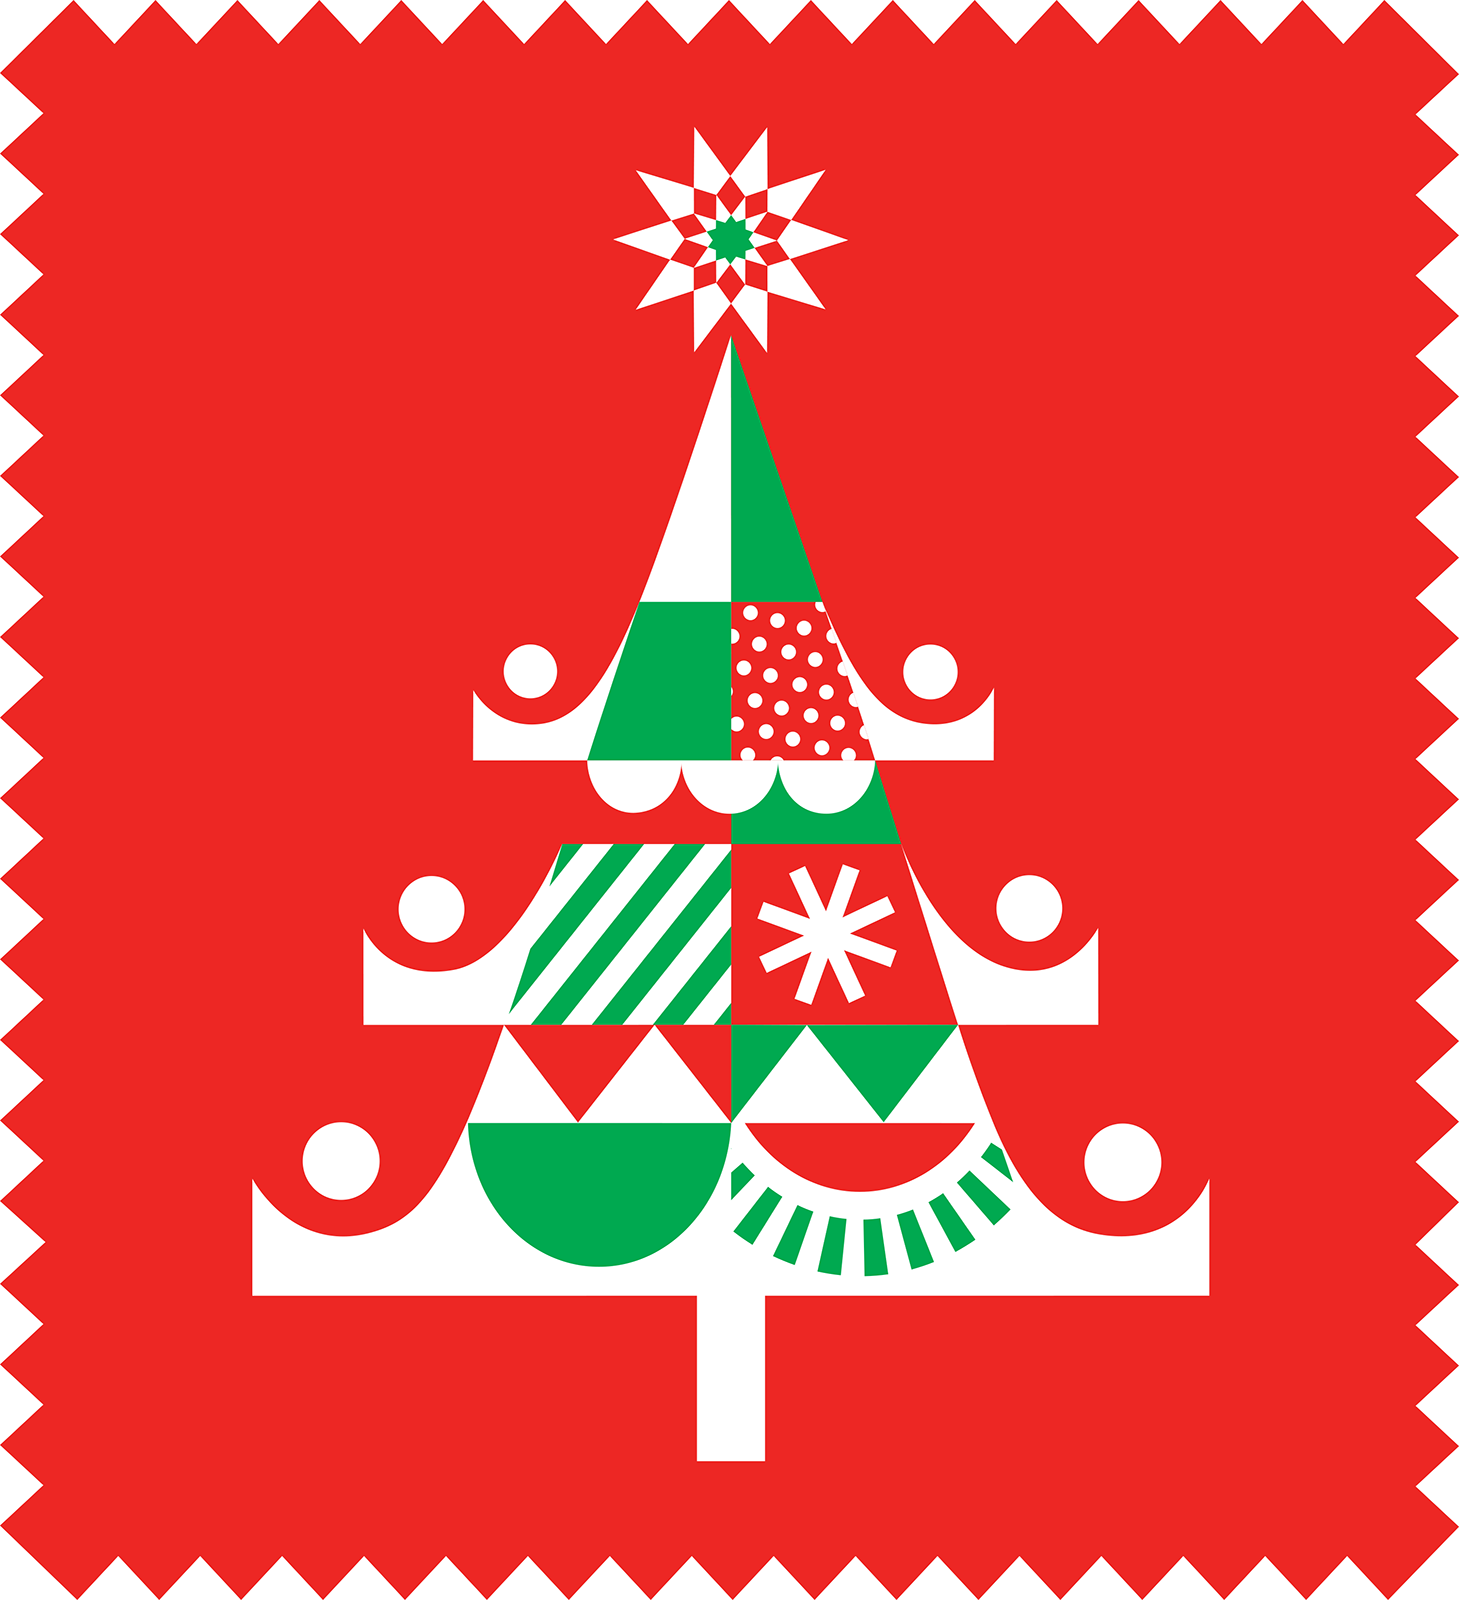 USPS 2020 Holiday Stamp by Kirsten Ulve